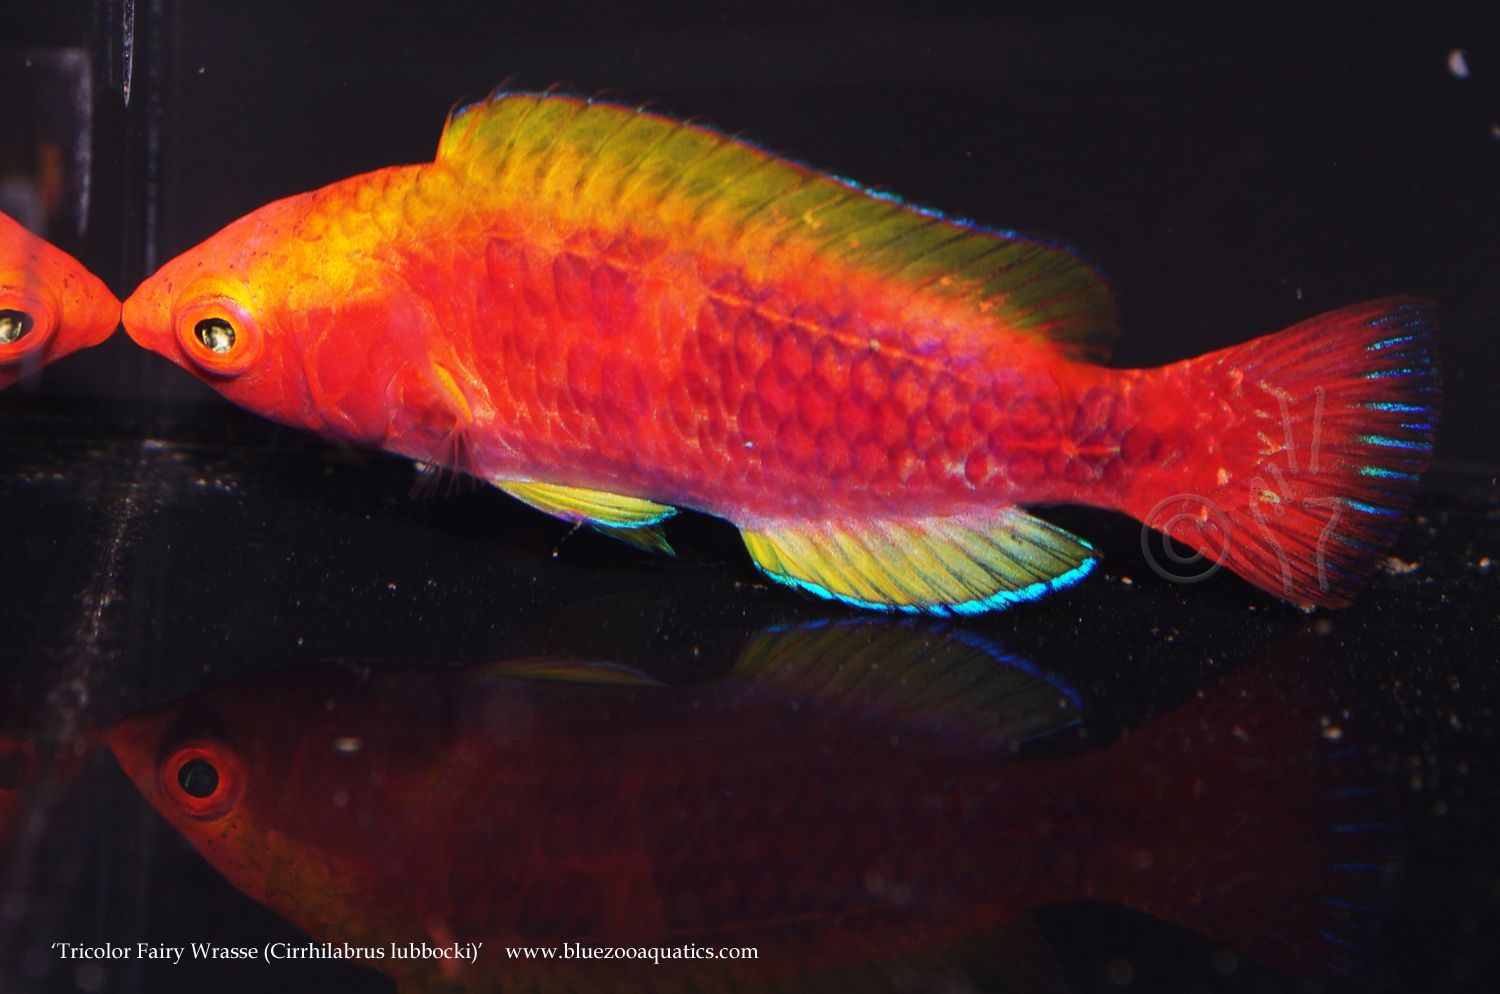 Collectors Choice Wysiwyg Item Tricolor Fairy Wrasse Cirrhilabrus Lubbocki Wrasse Tri Color Marine Aquarium